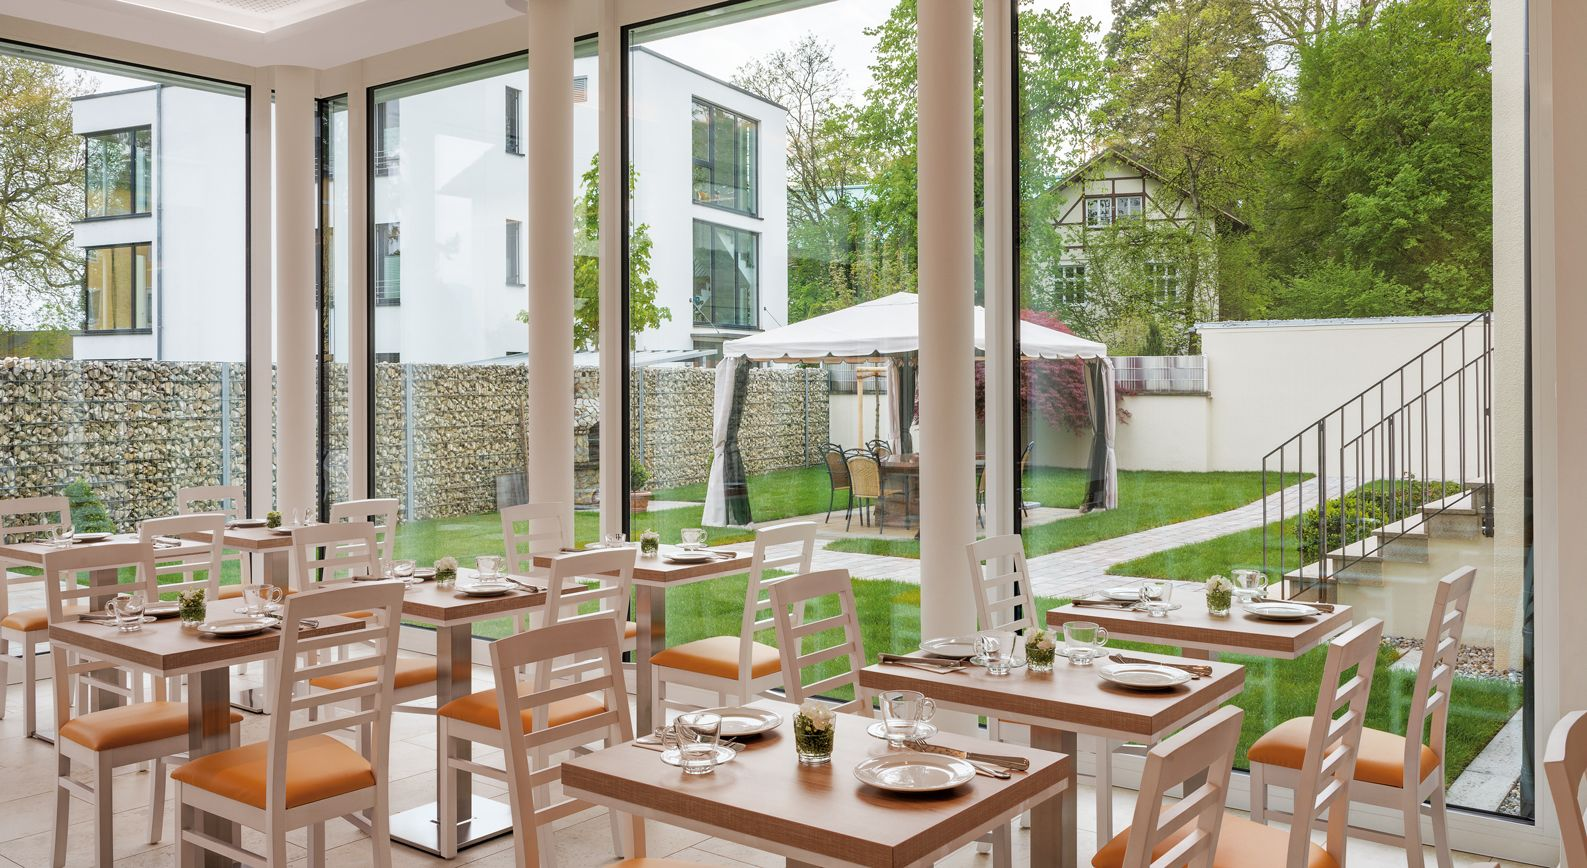 Hotel und pension seereich in lindau for Designhotel bodensee